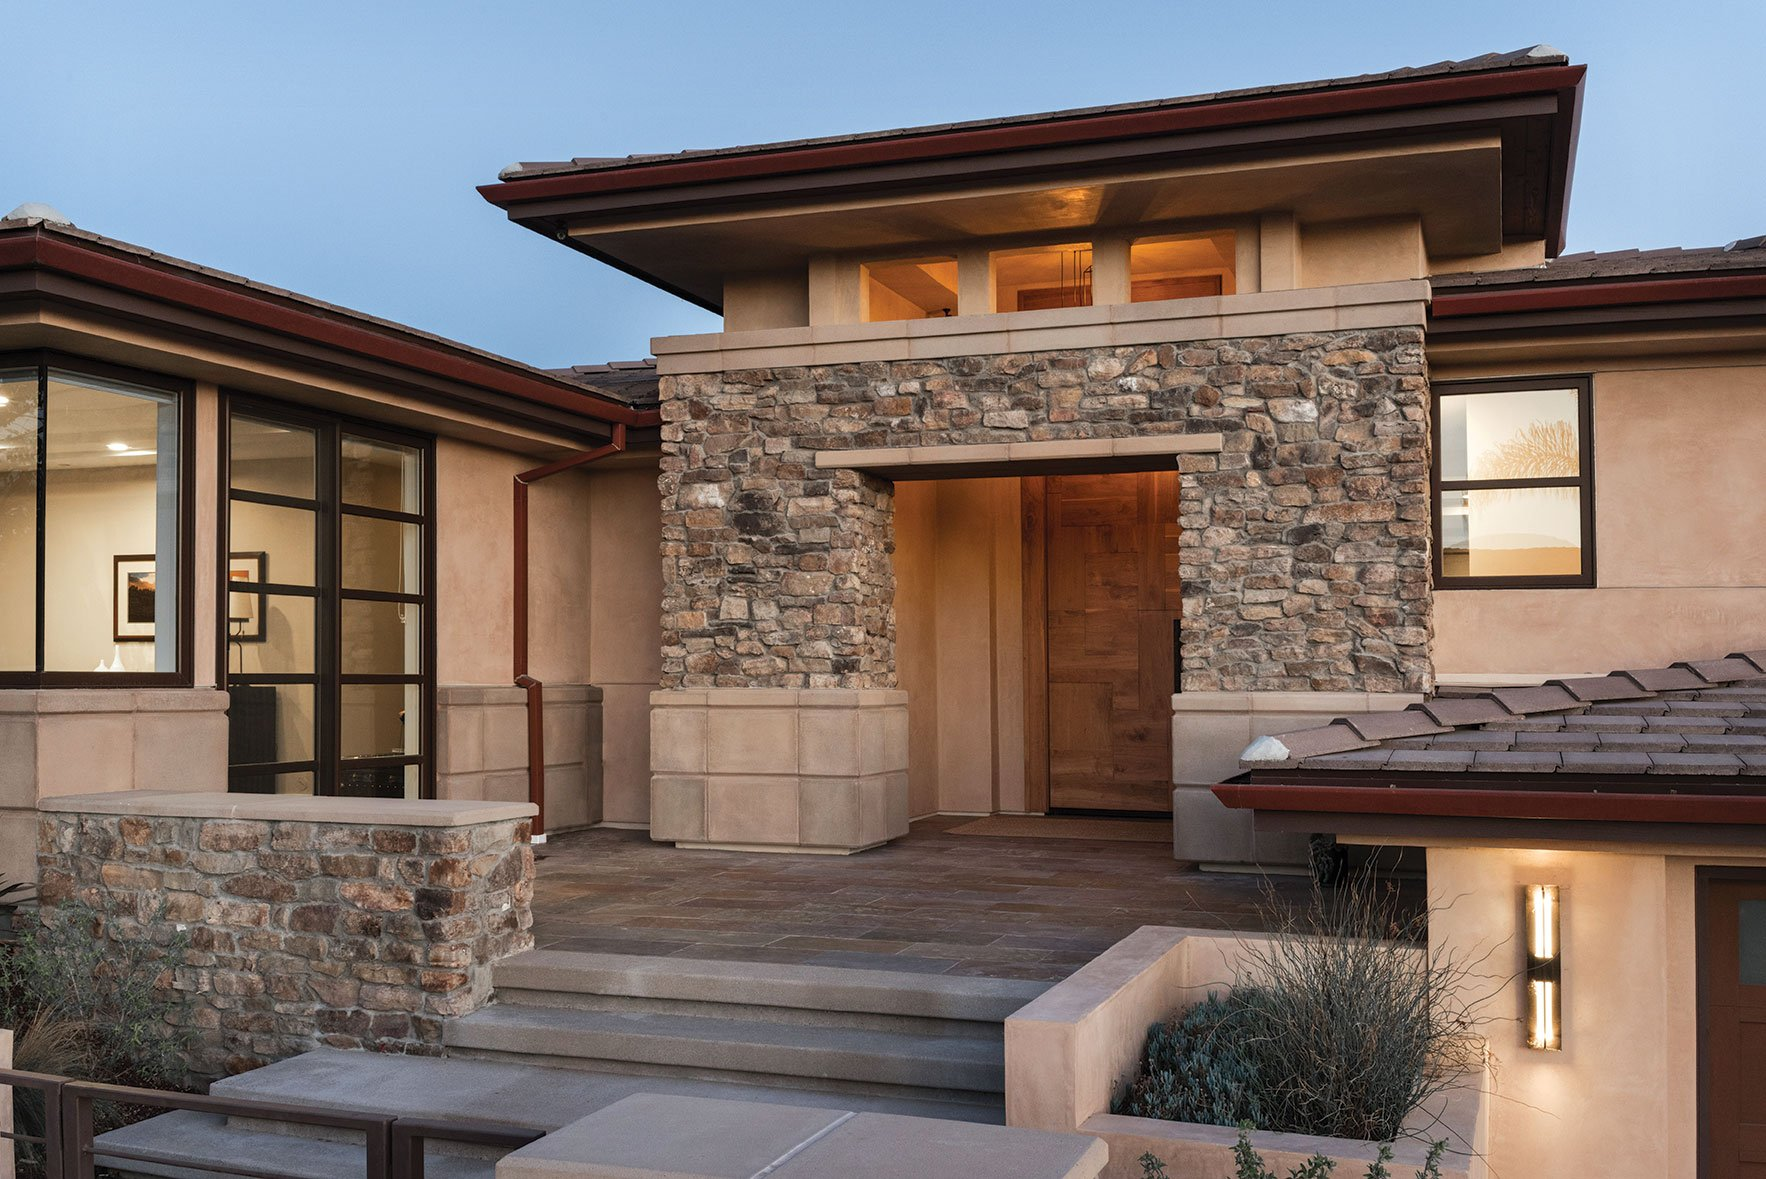 La Jolla coastal family-friendly remodel front entryway with stone and custom door